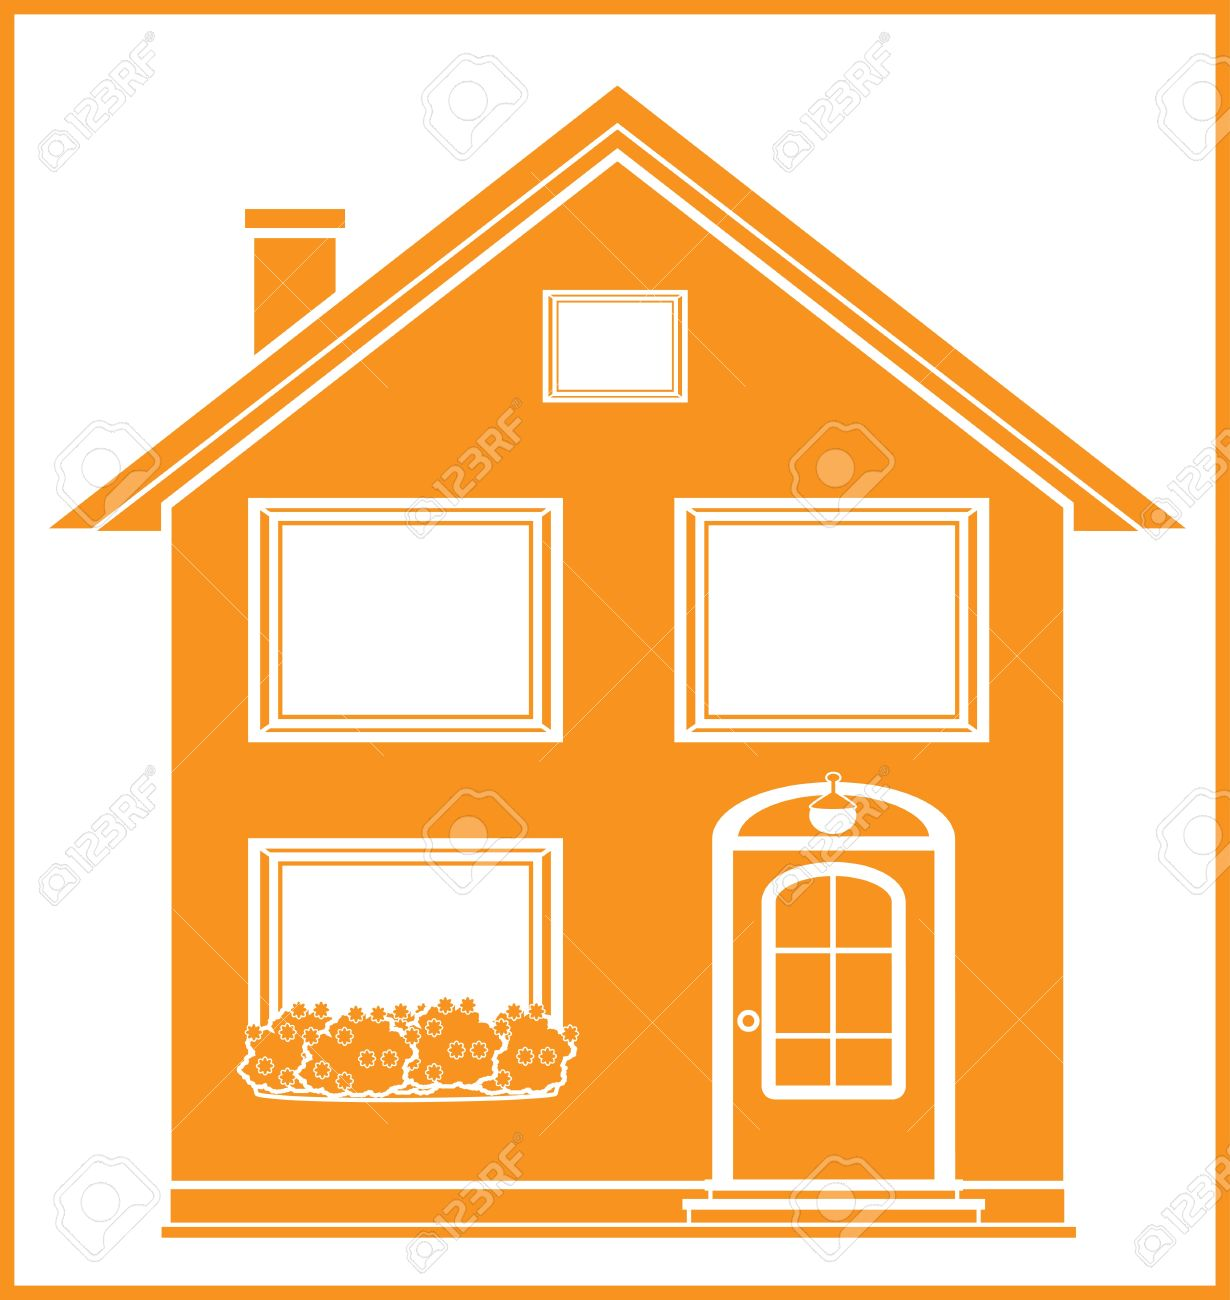 Real Estate Symbol With Isolated House Silhouette In Frame Royalty.